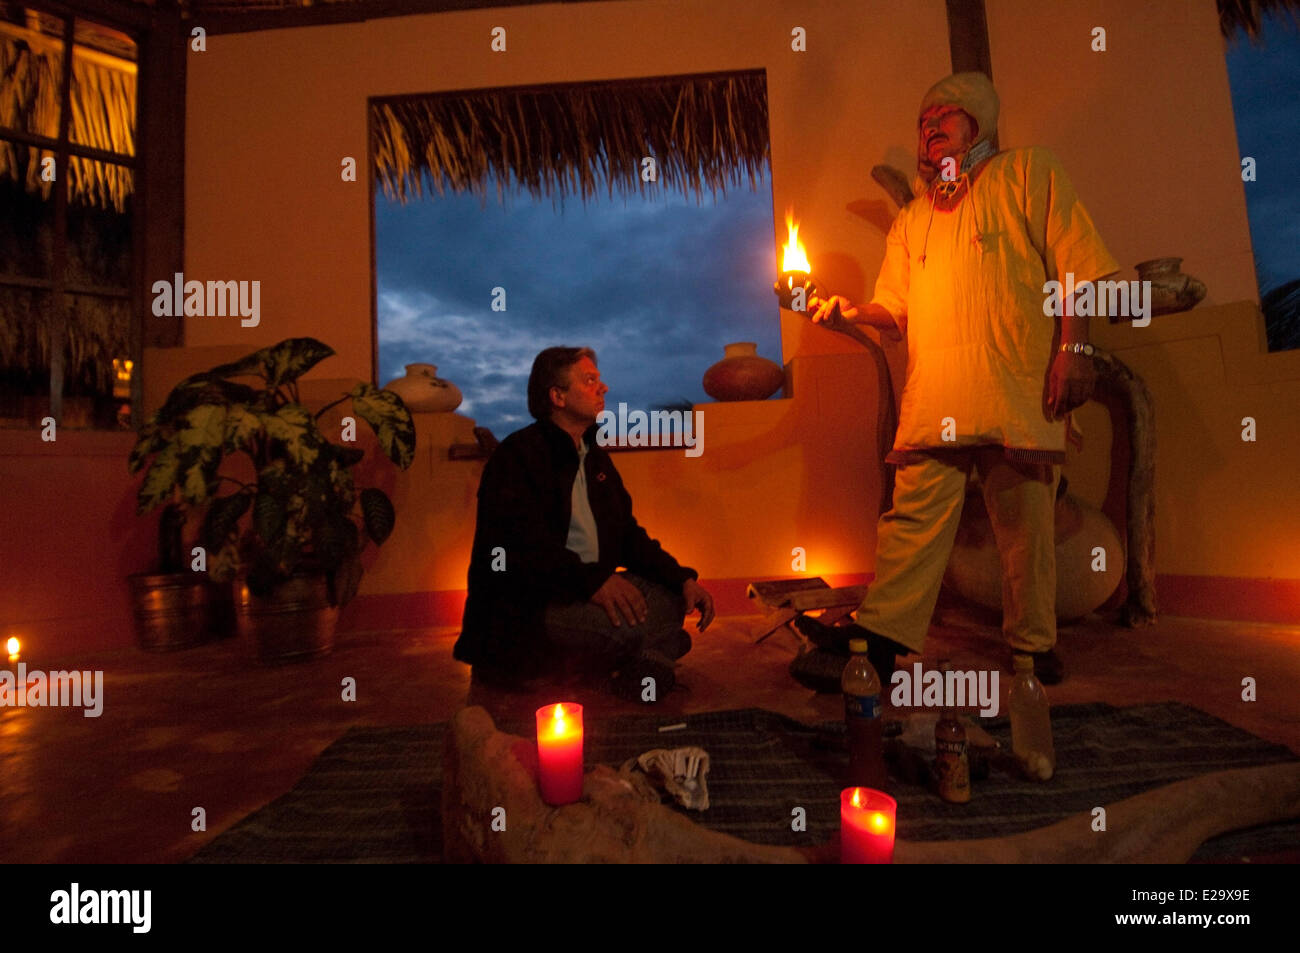 Peru, San Martin province, Lamas, capital of the indigenous people quechua lamistaAyawaska ceremony, a plant with Stock Photo